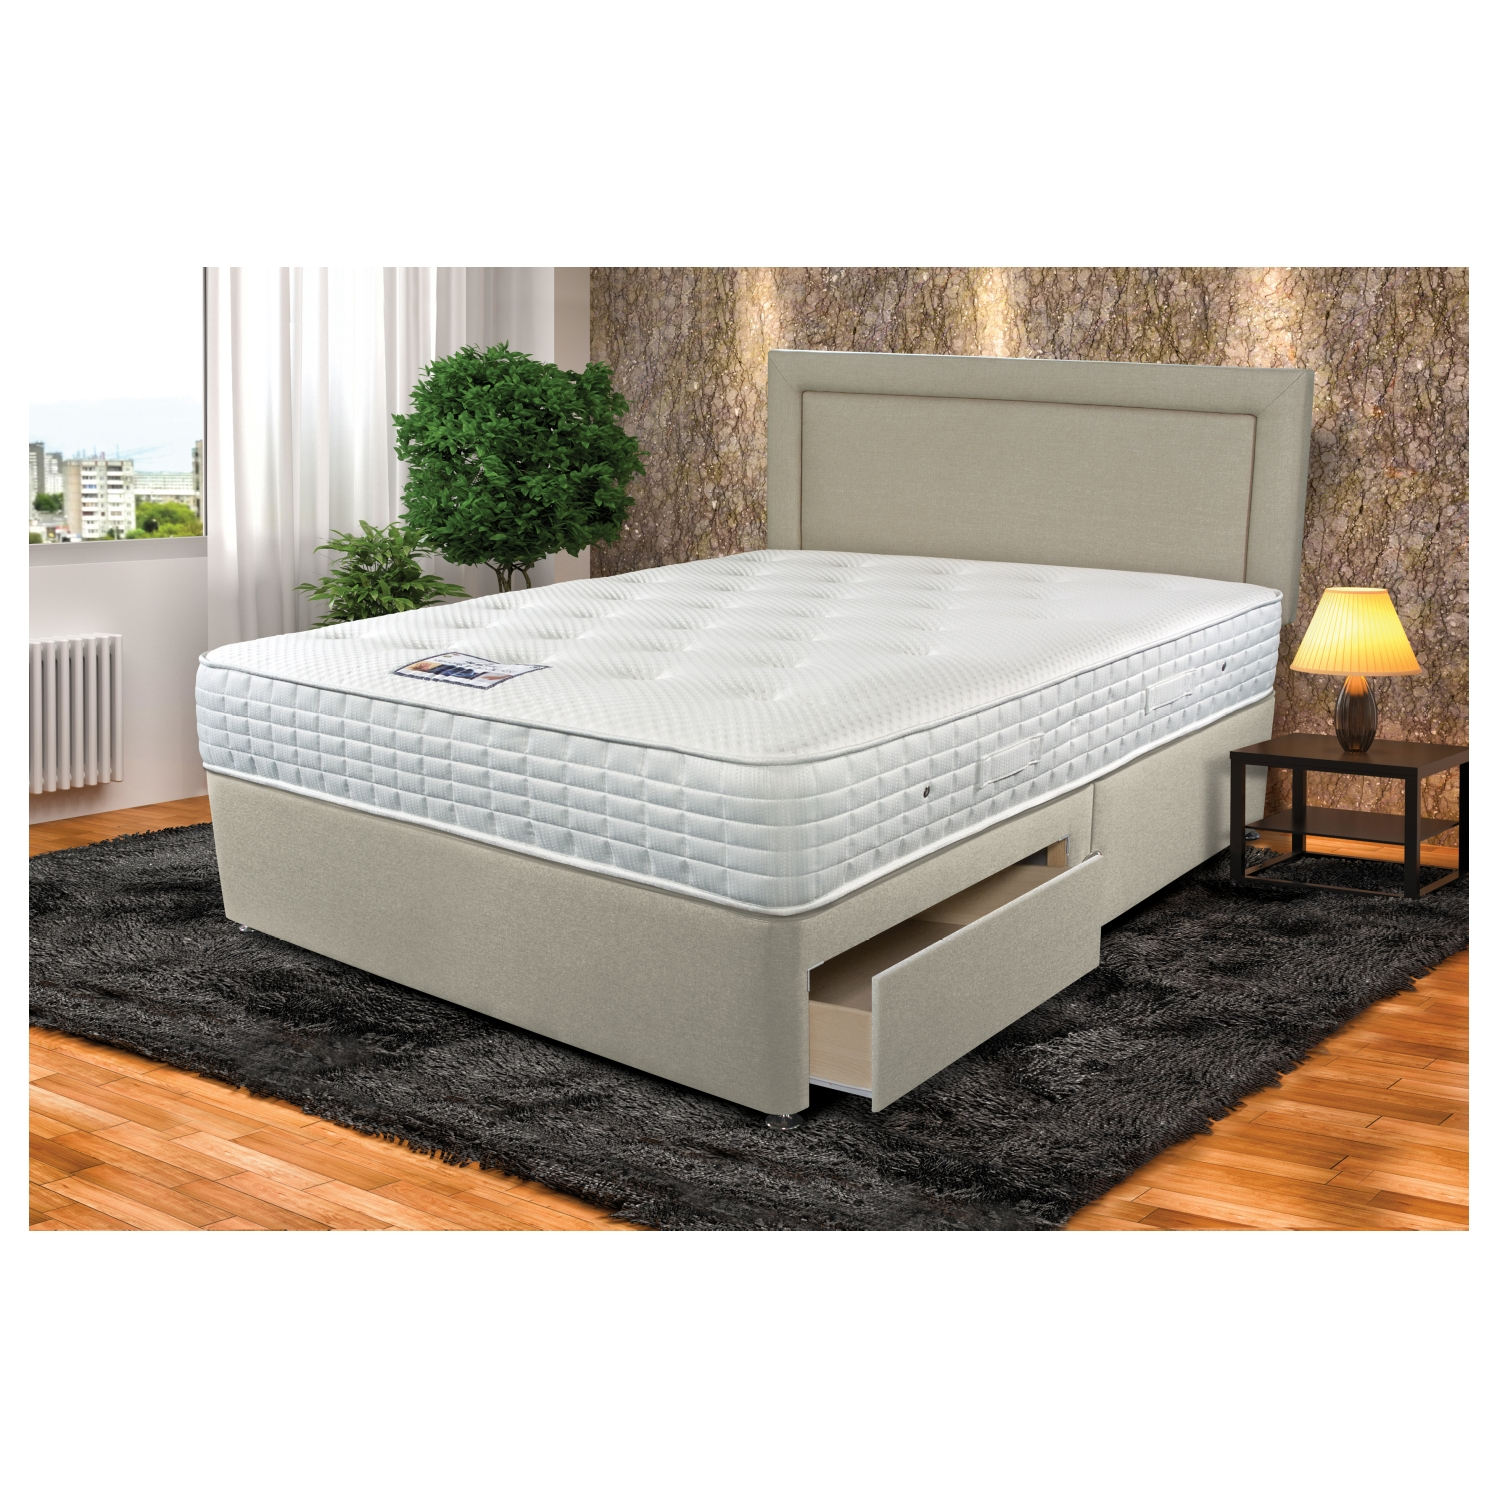 Astonishing Sleepeezee Cool Sensations 1400 Ottoman Divan Bed Uwap Interior Chair Design Uwaporg